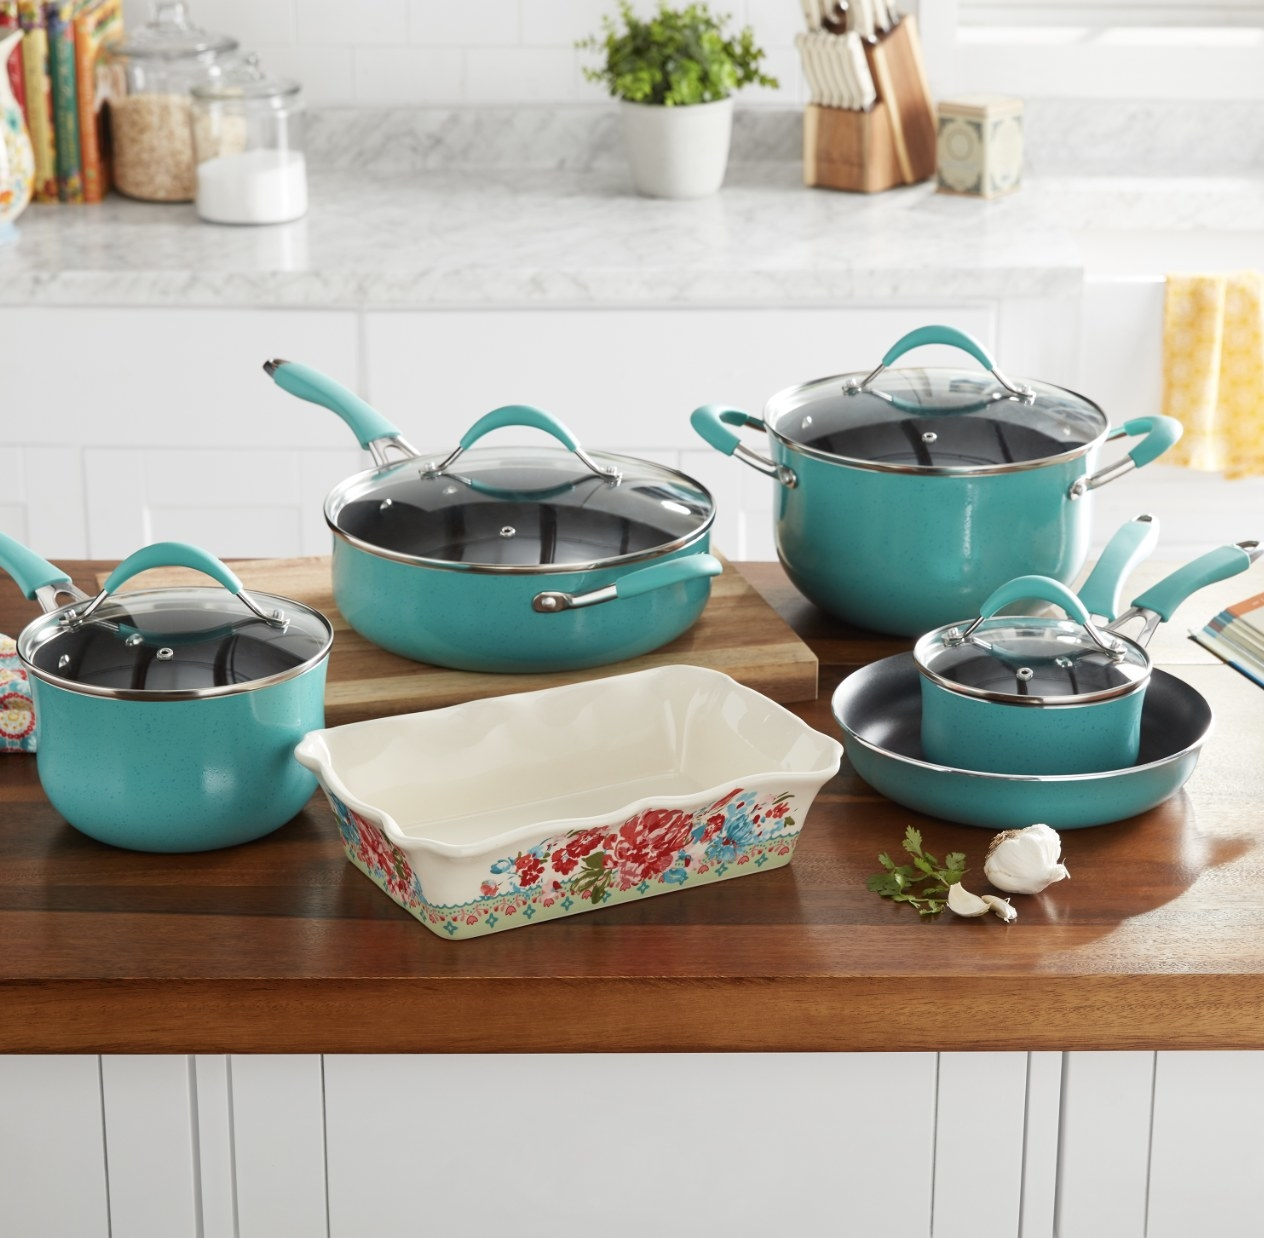 The cookware set in a teal blue